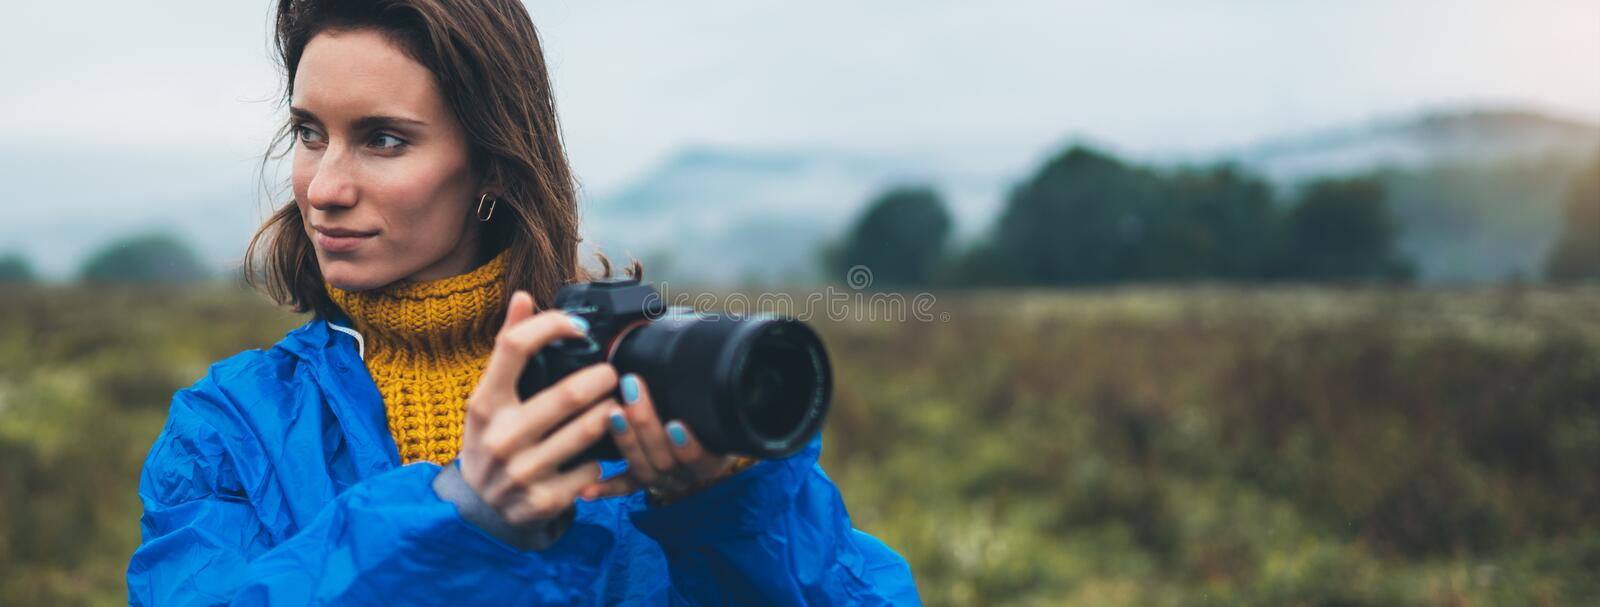 Photographer tourist girl in blue raincoat hold in female hands photo camera take photography froggy mountain, traveler shooting royalty free stock photos